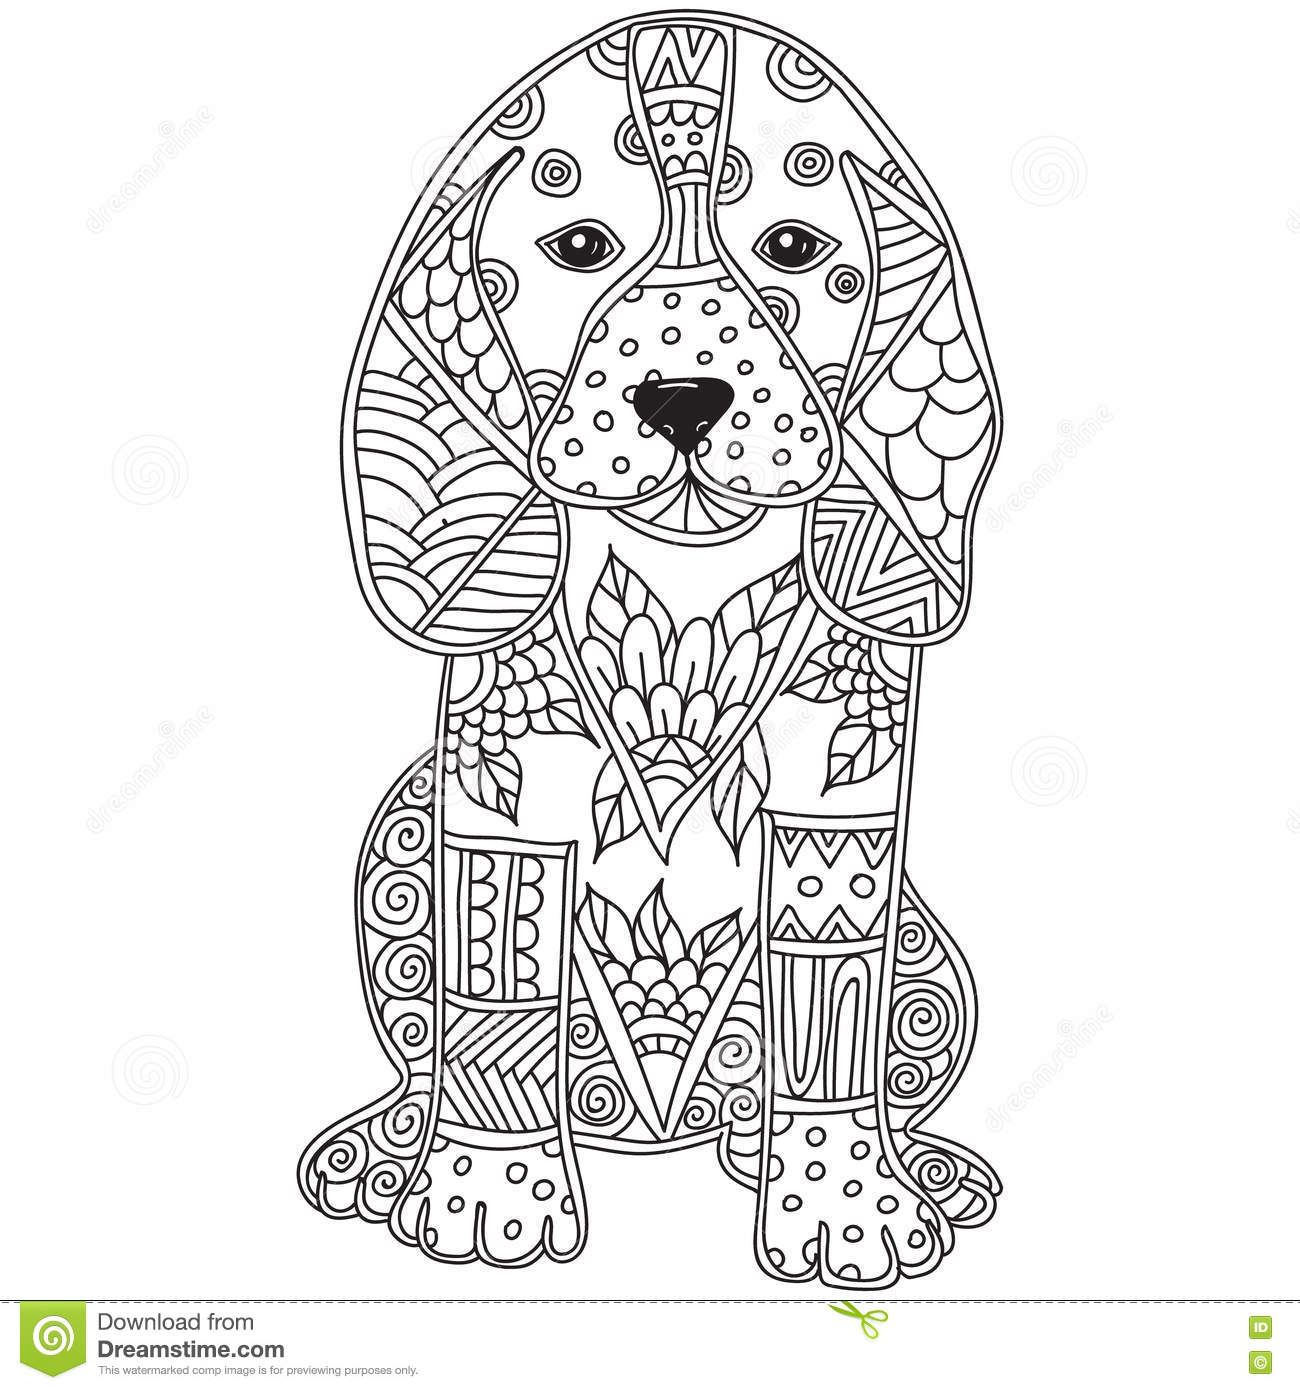 Dog Adult Antistress Or Children Coloring Page. Stock Vector   Illustration  Of Artwork, Abstract: 72196568